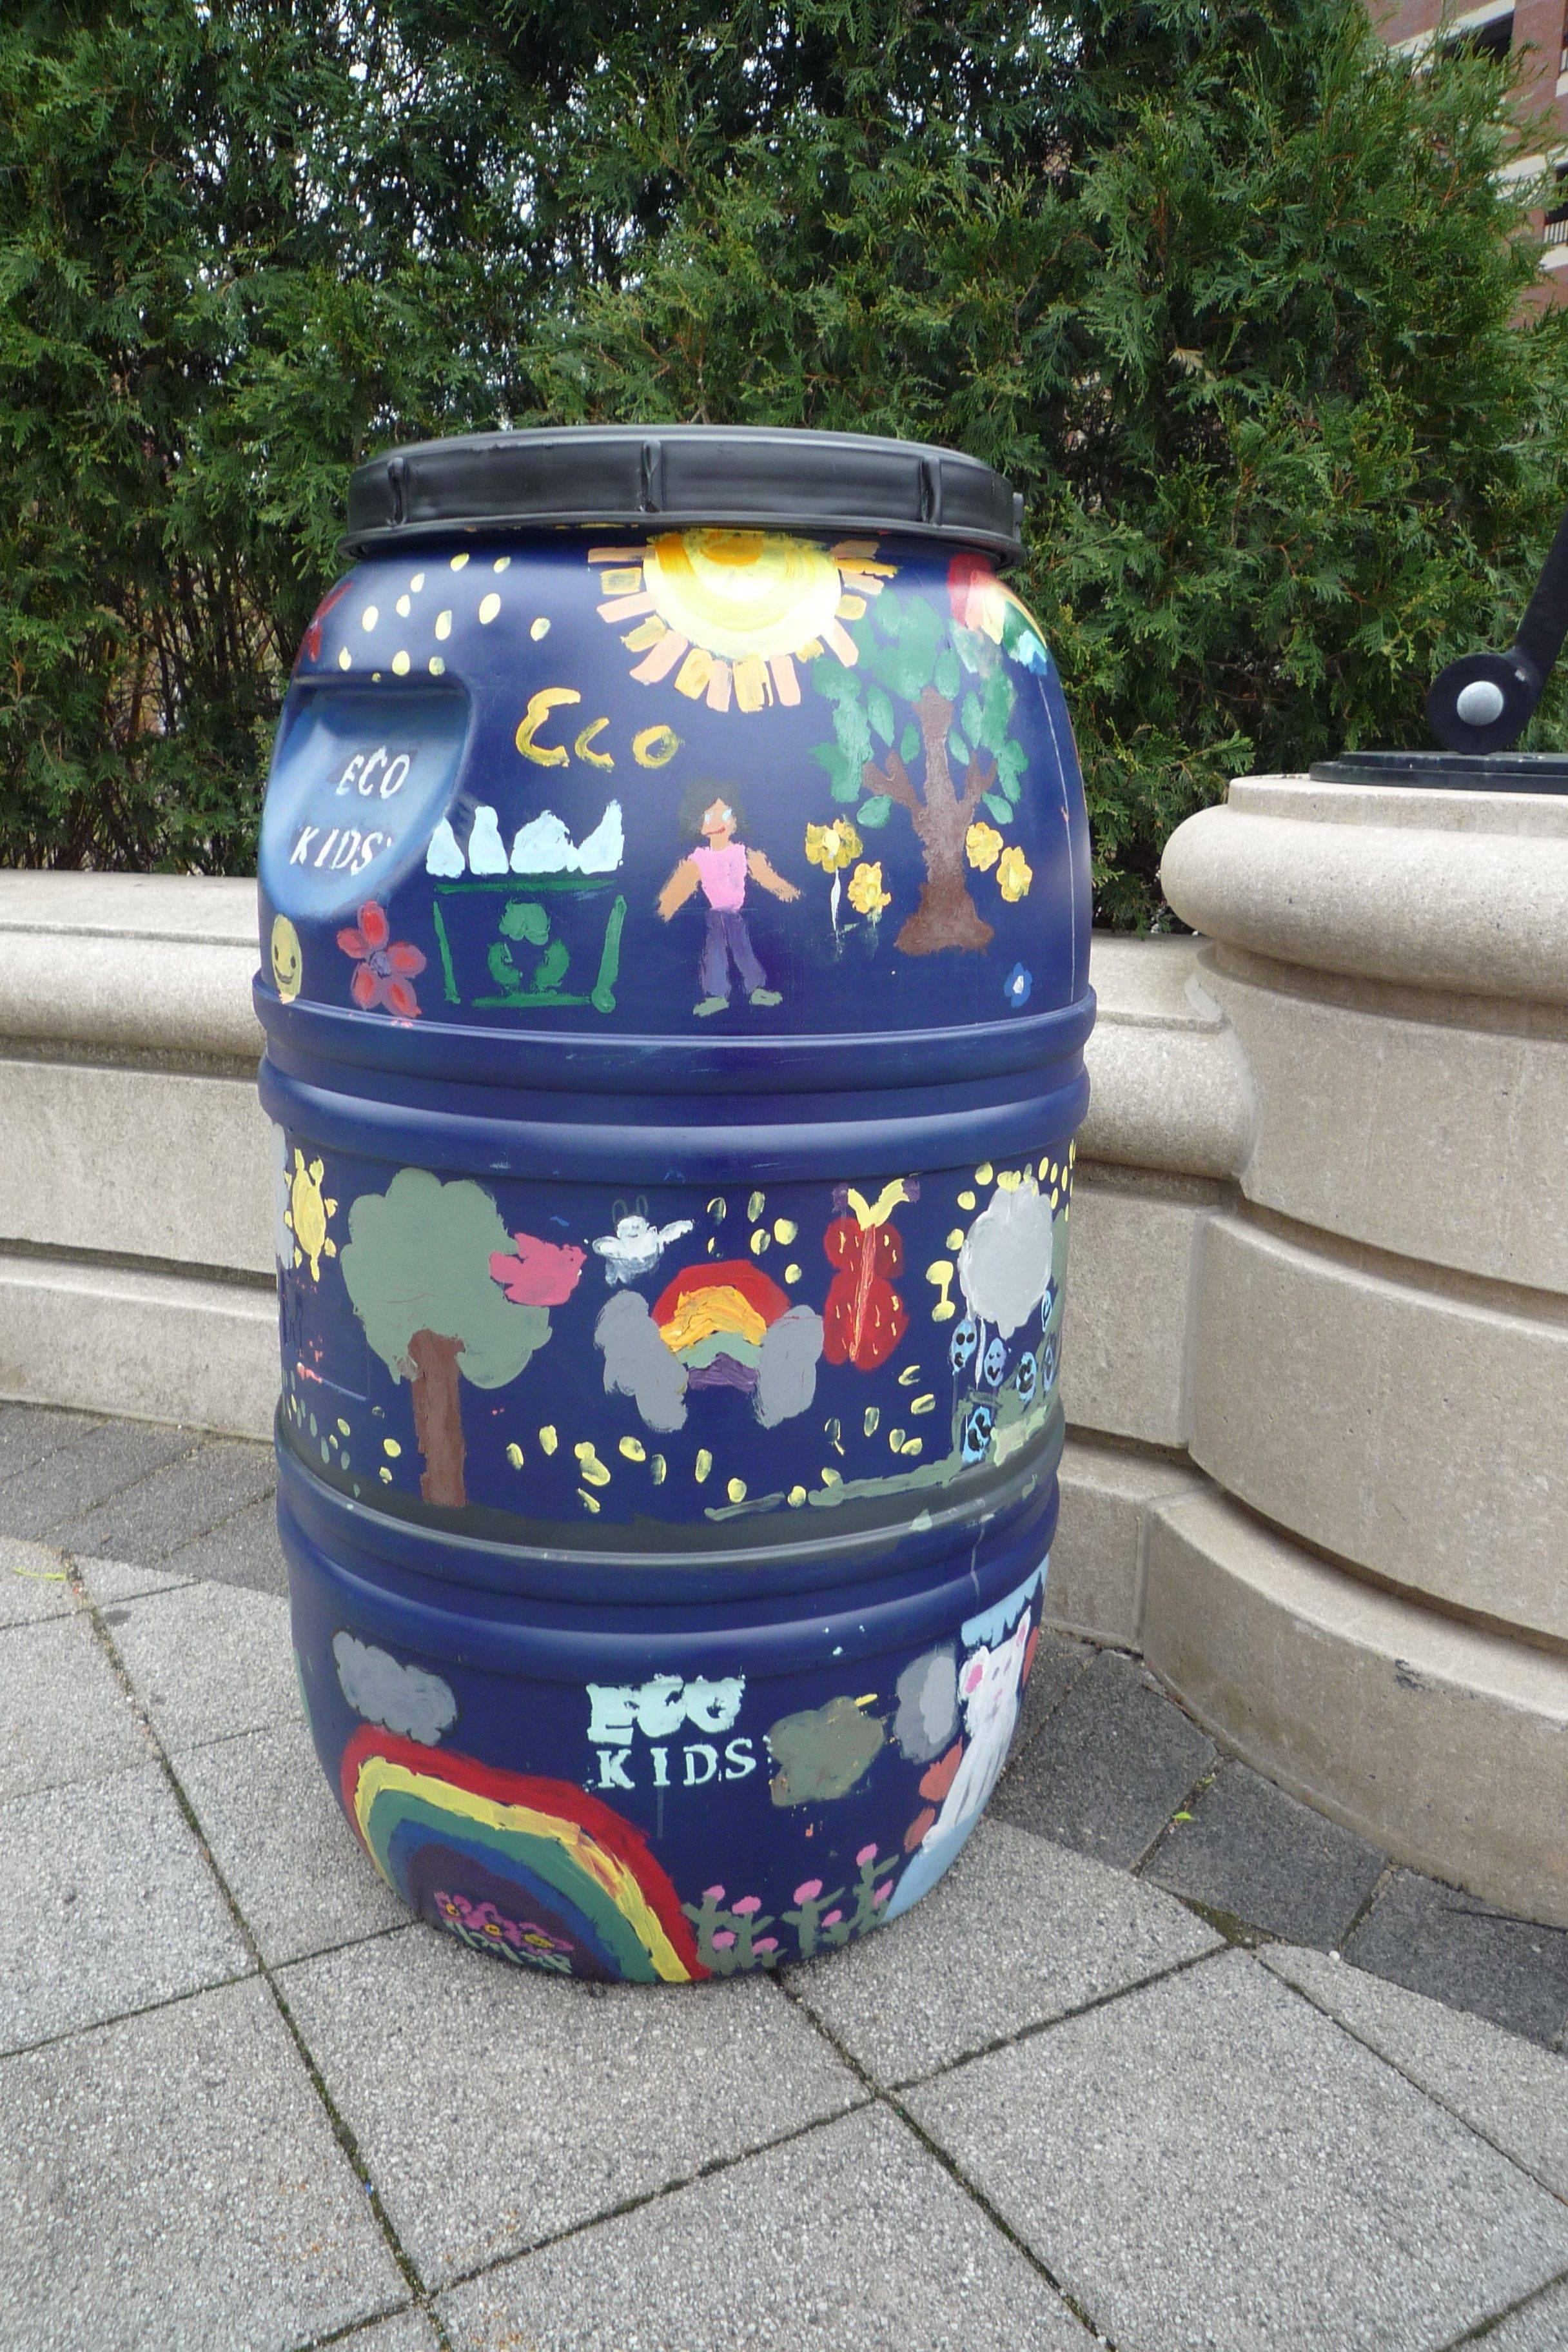 Students in Arlington Heights Elementary District 25 ecology clubs painted rain barrels that were displayed in Harmony Park in downtown Arlington Heights earlier this month.